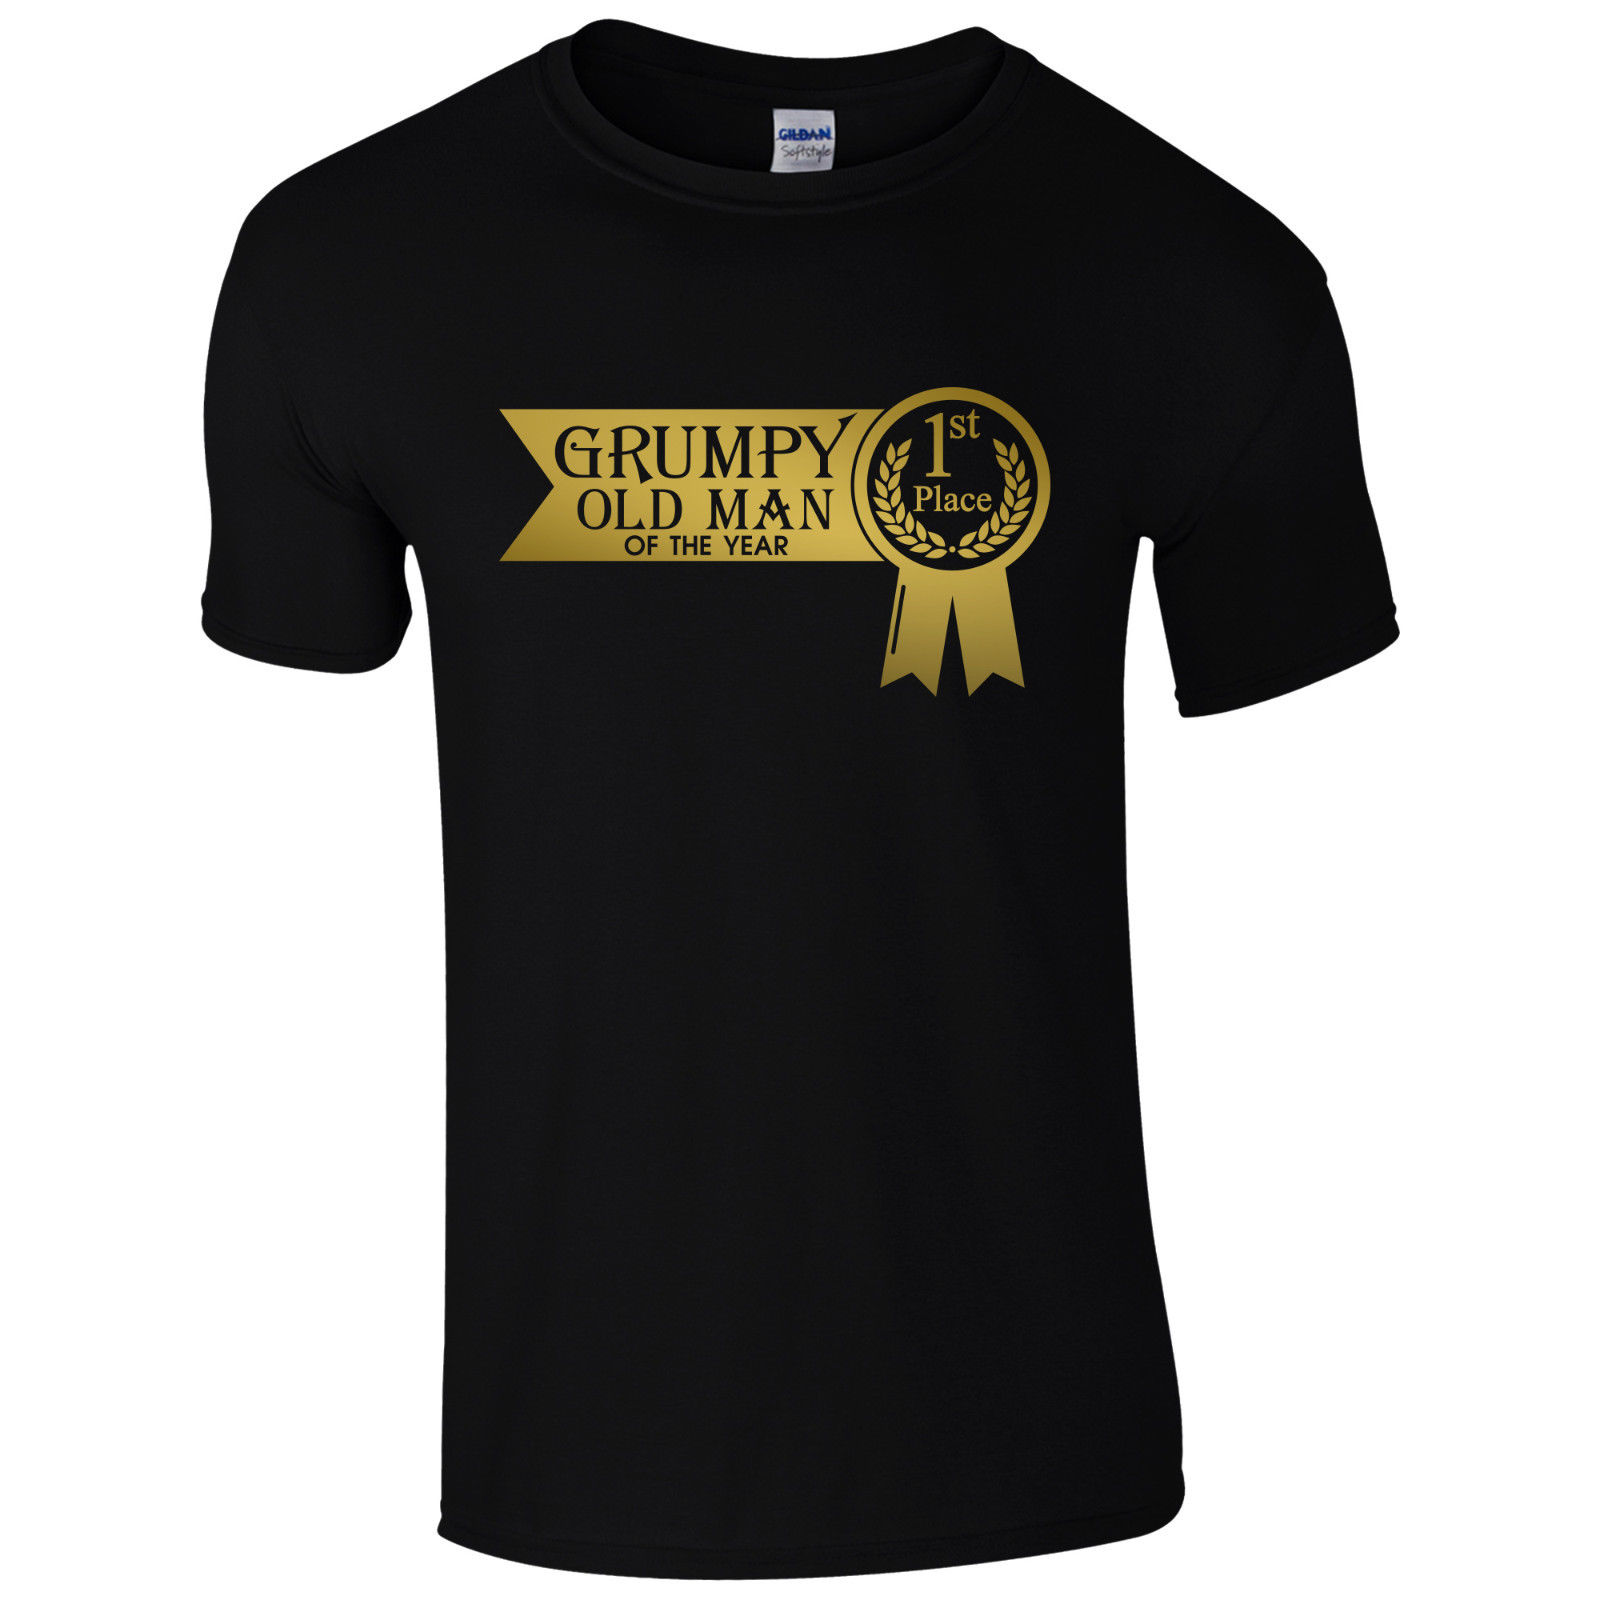 Grumpy Old Man Of The Year 1st Place T-Shirt - Fathers Day Gift Dads Present Top Men Summer Short Sleeves T Shirt